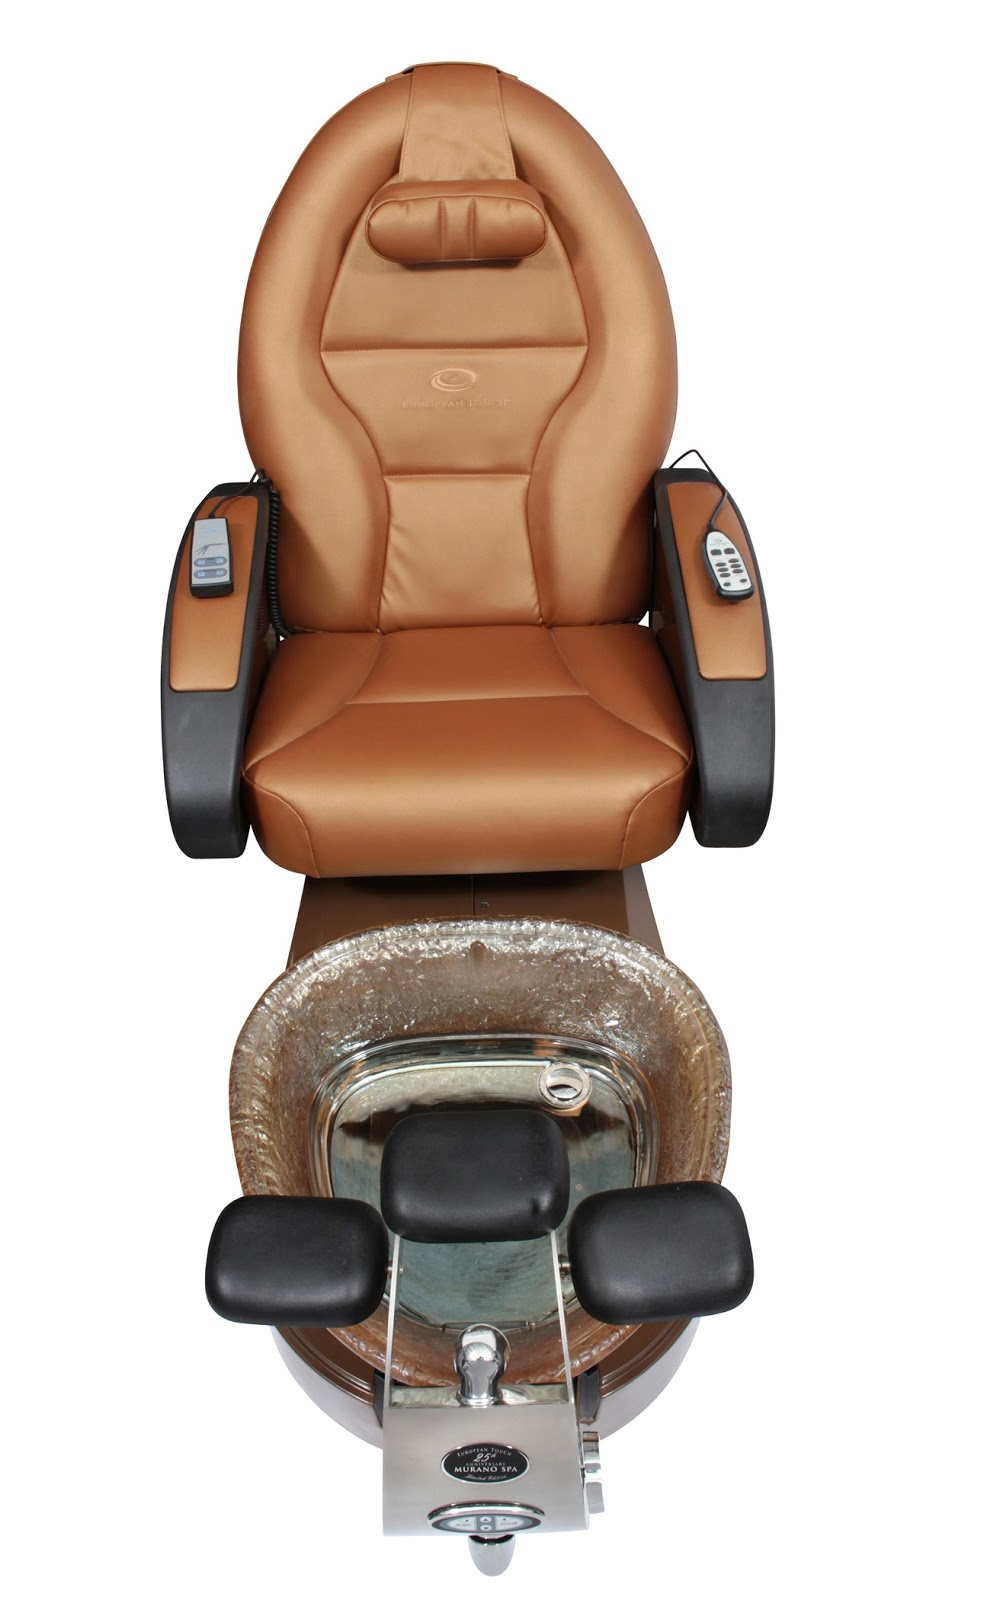 Pedicure Spa Chair, Salon Furniture, Spa Pedicure Chair With Sofa Pedicure Chairs (View 10 of 15)